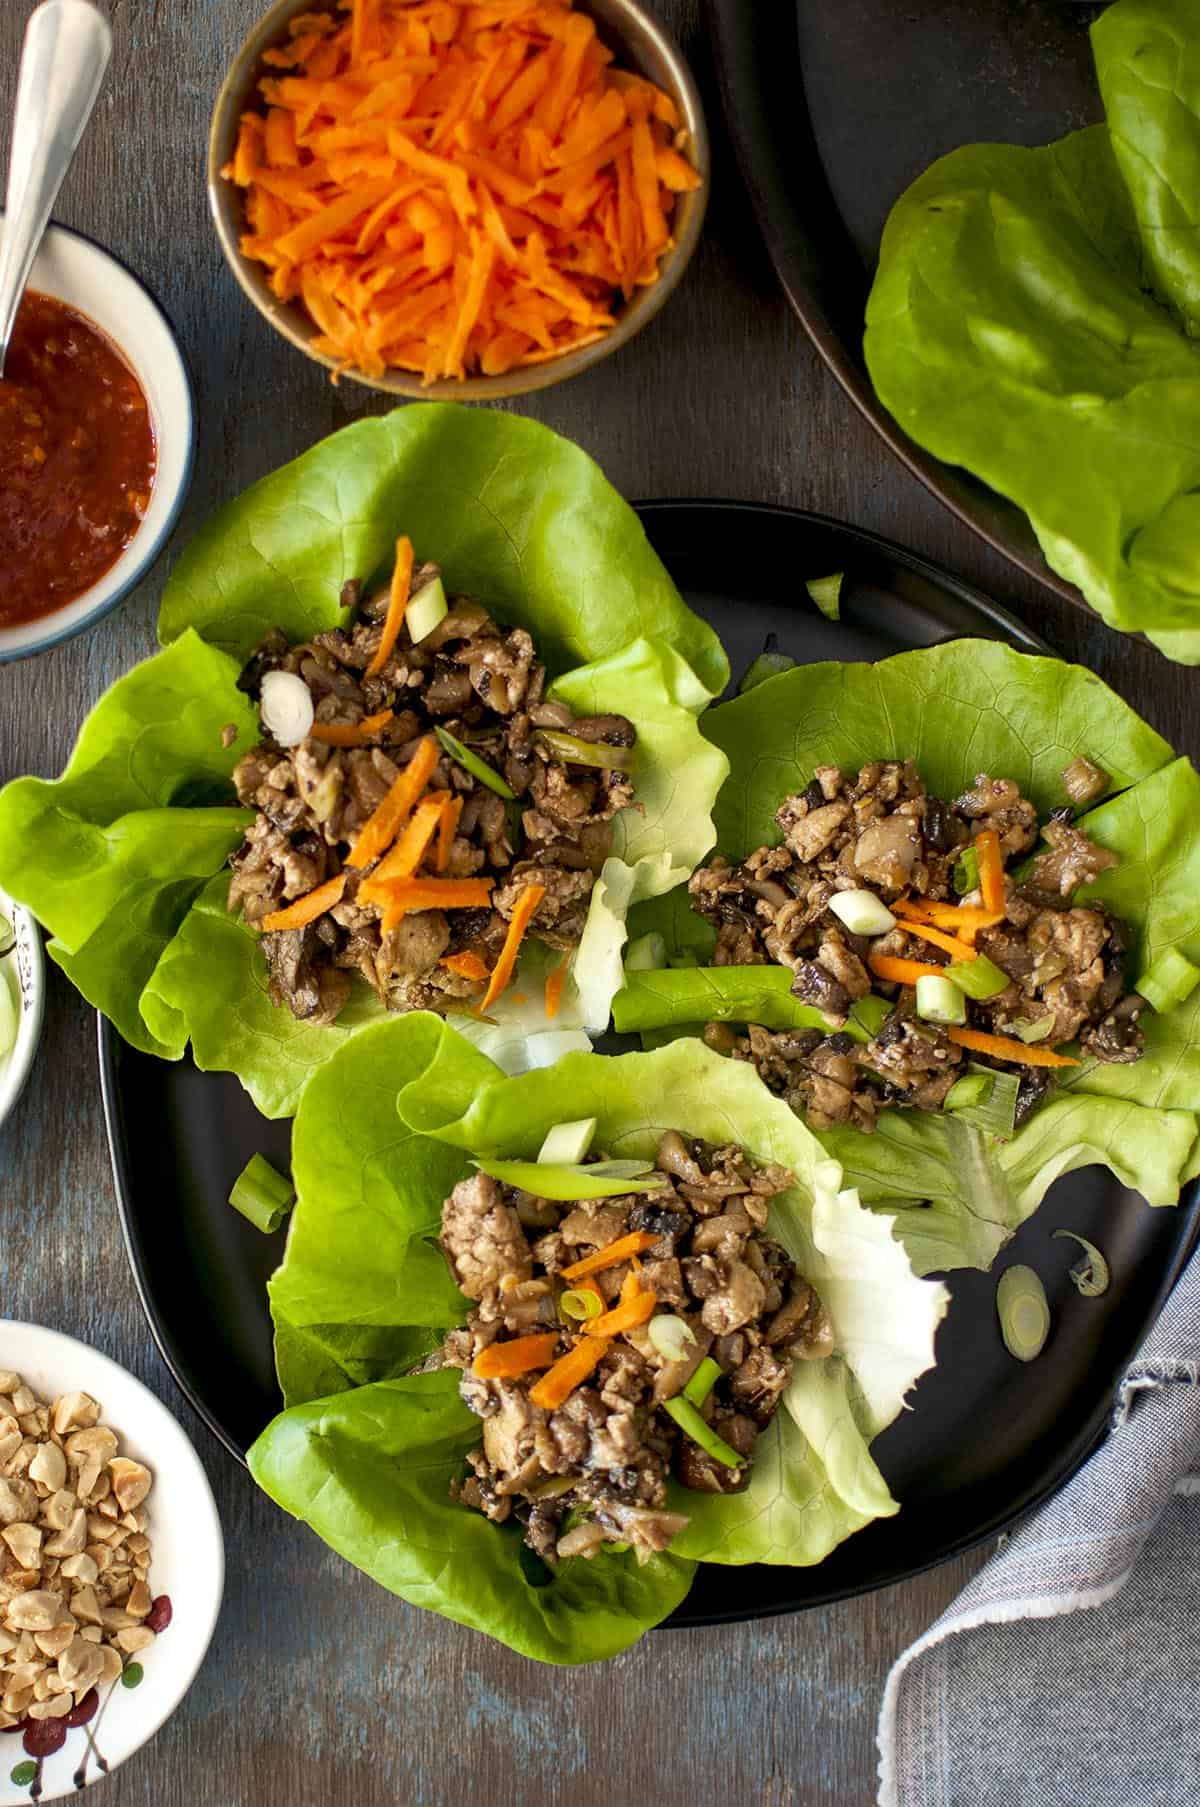 Tray with Tofu lettuce wraps topped with carrot and peanuts